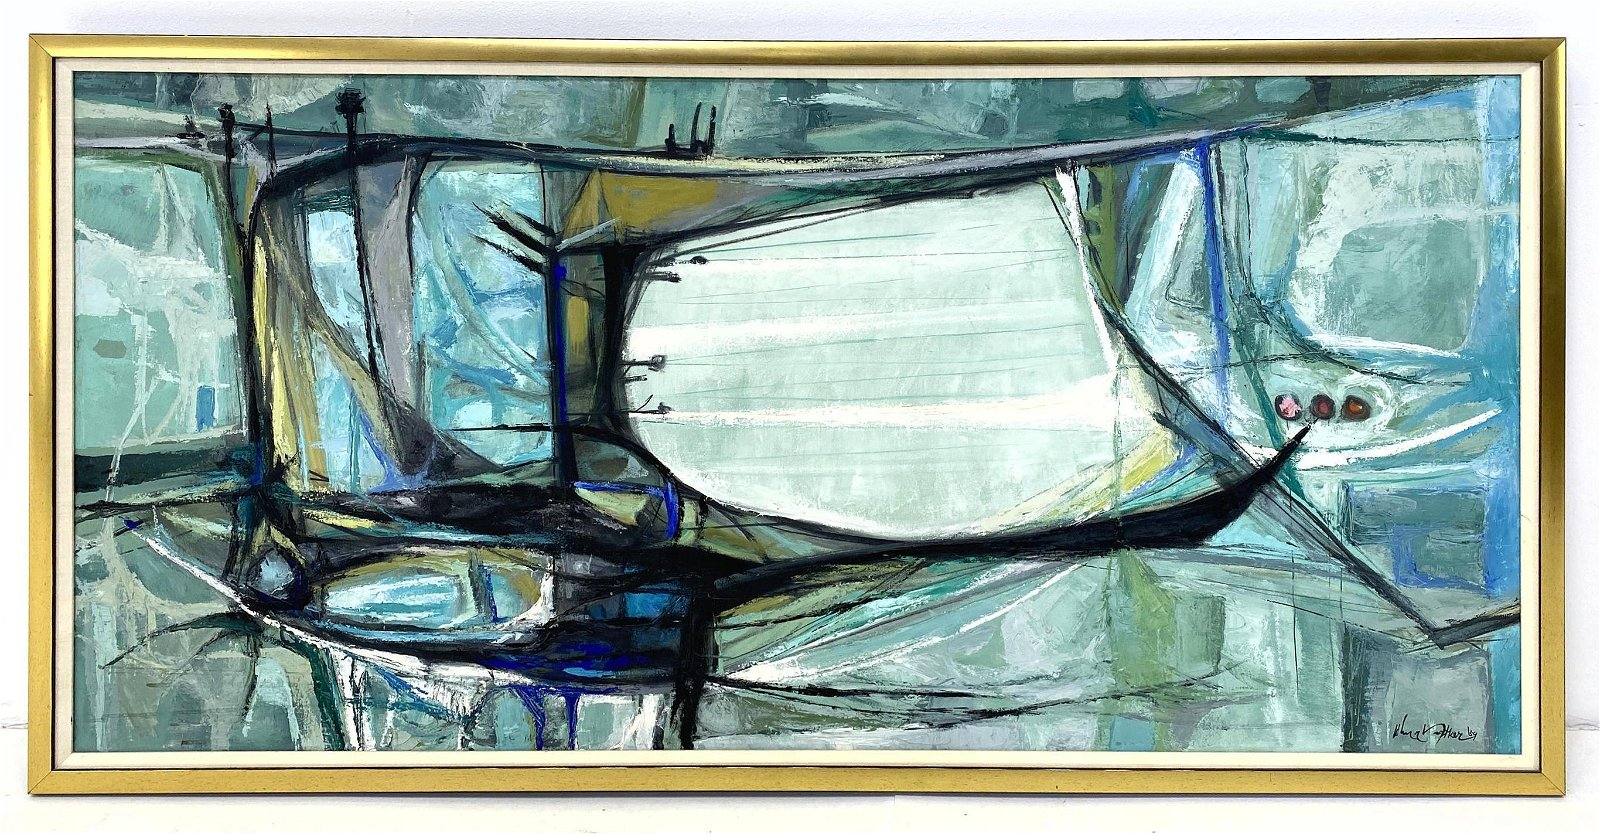 JOHN NARTKER Large Abstract Oil Painting on Canvas. Blu